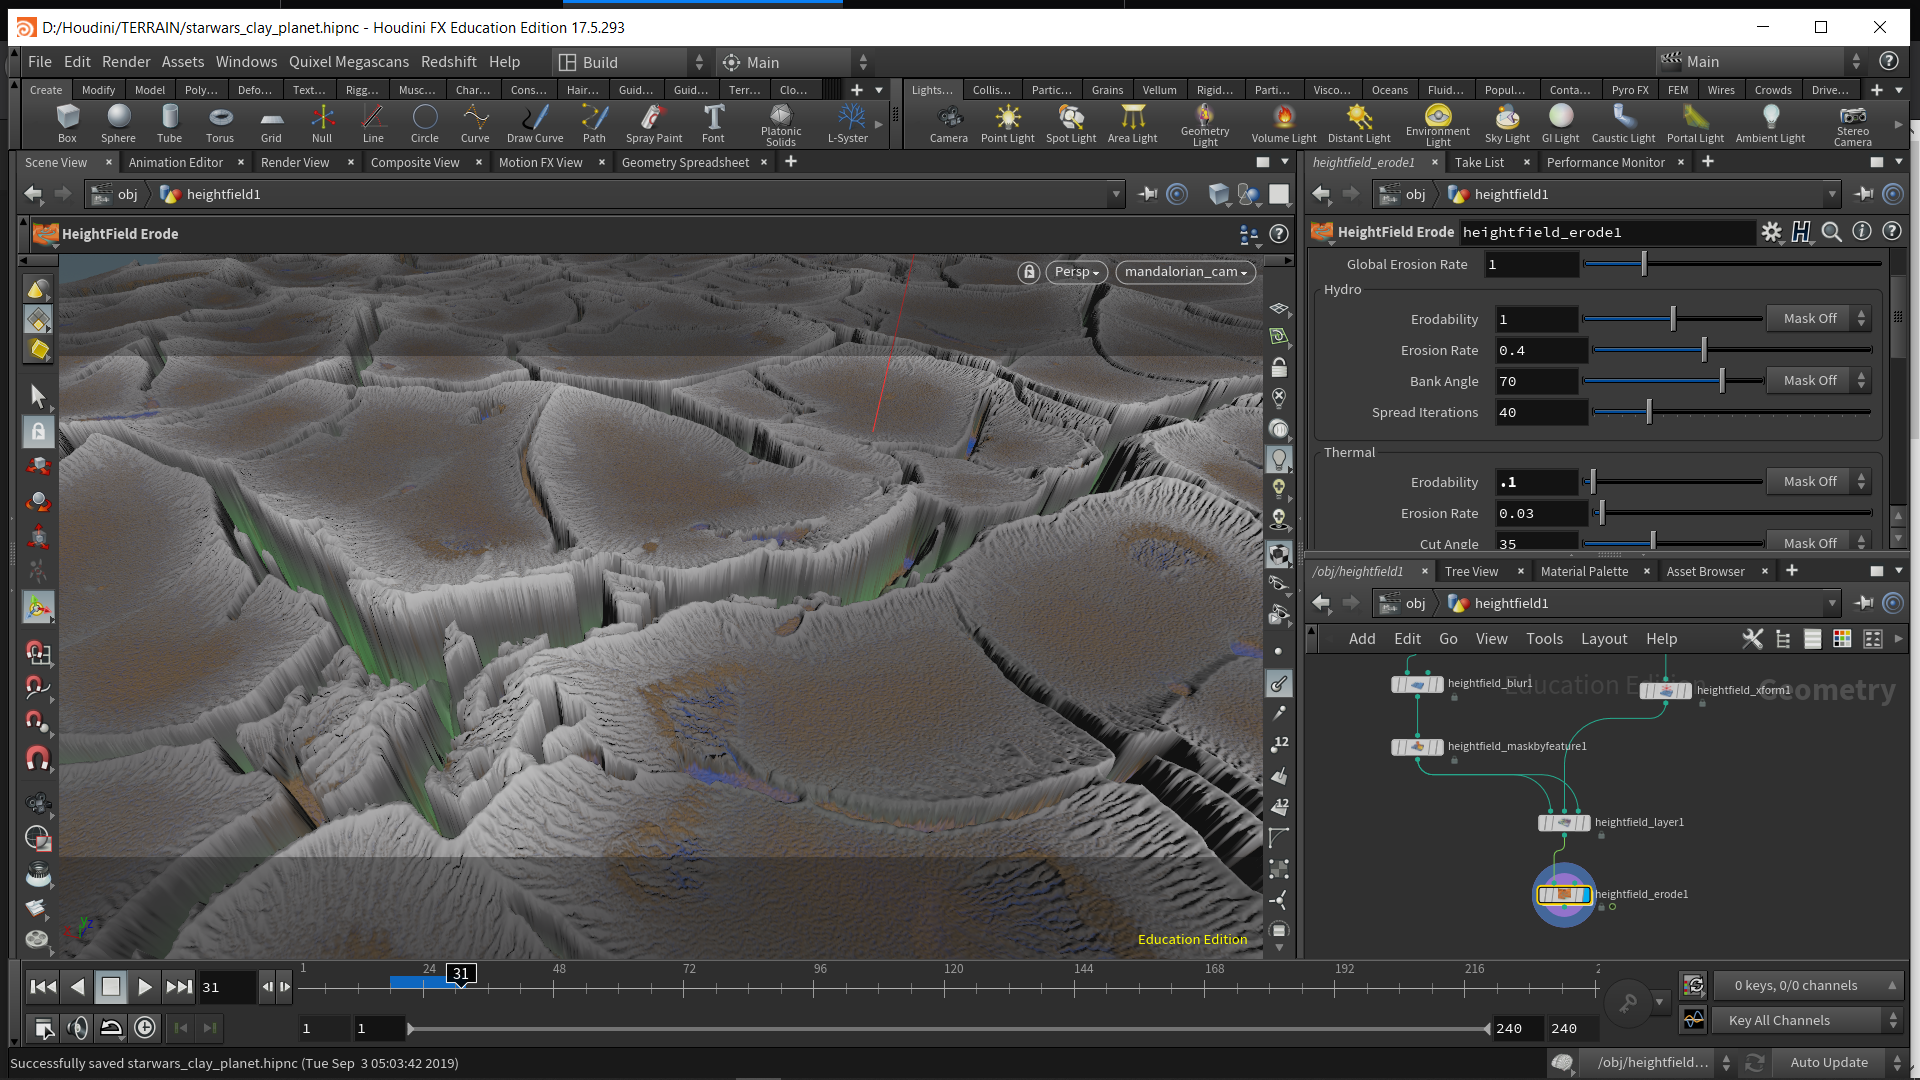 Initial test. *widen valleys, bring up valley floor, erosion could be just in texture.